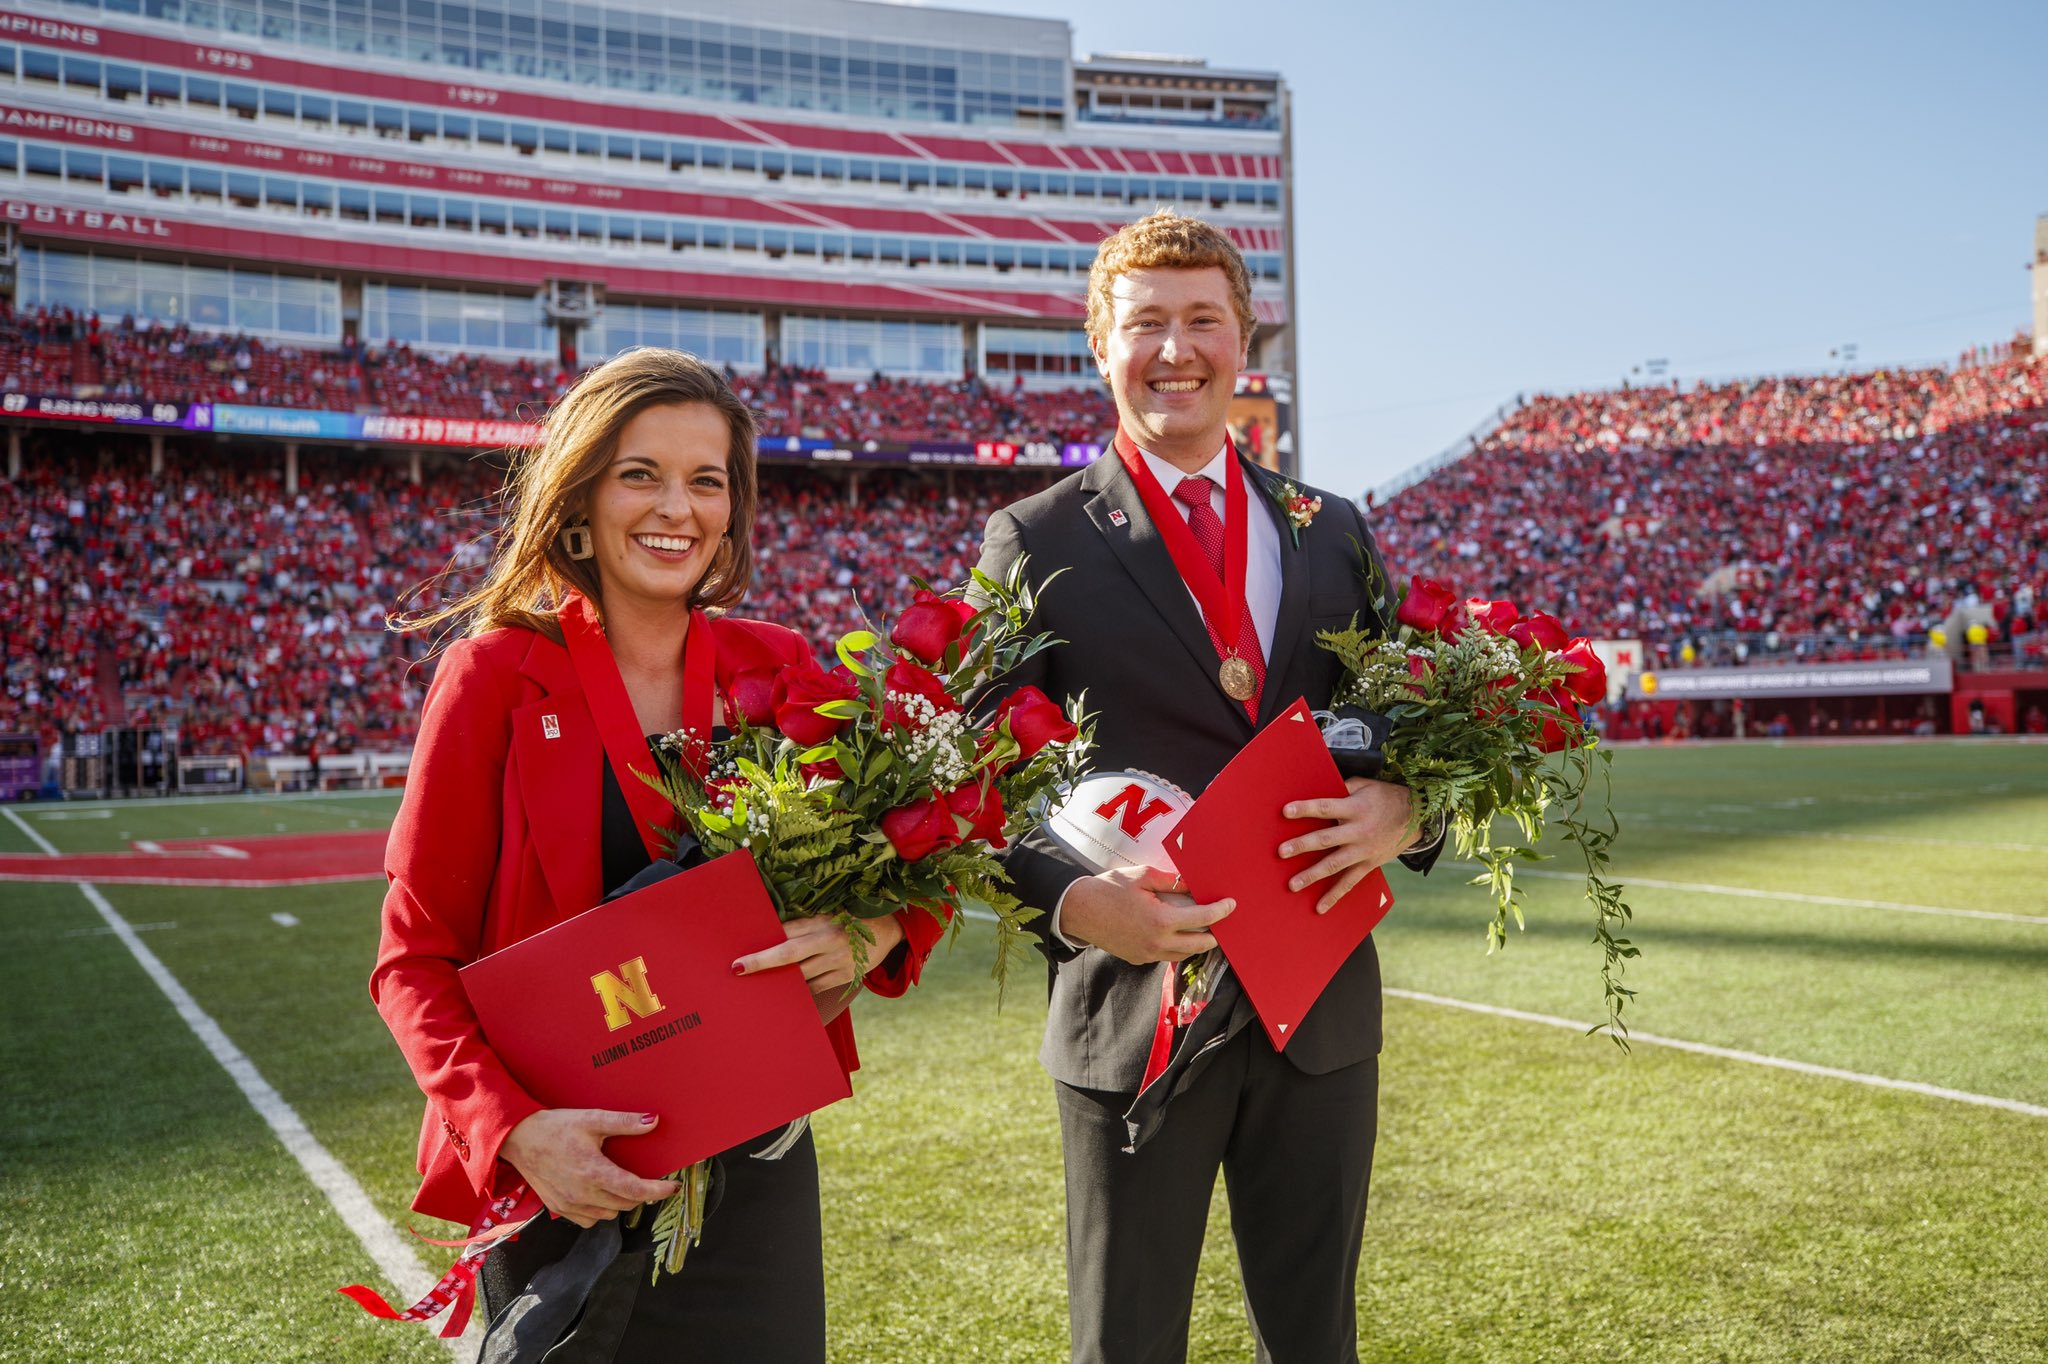 2019 Homecoming Queen and King stand with flowers and medals in the middle of the football field at halftime